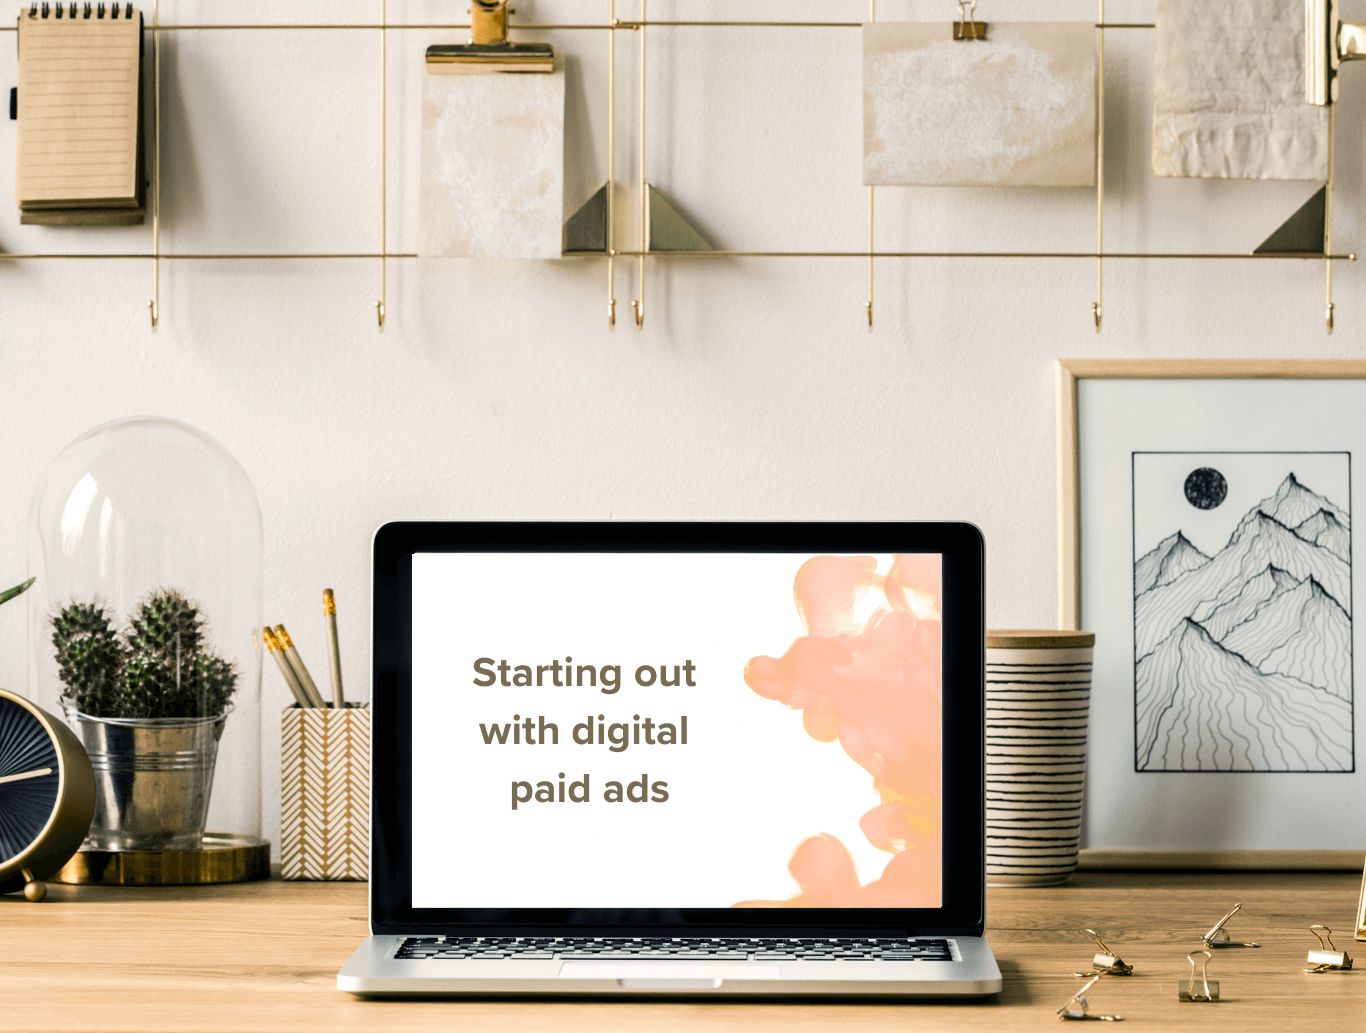 Starting out with Digital Paid Ads